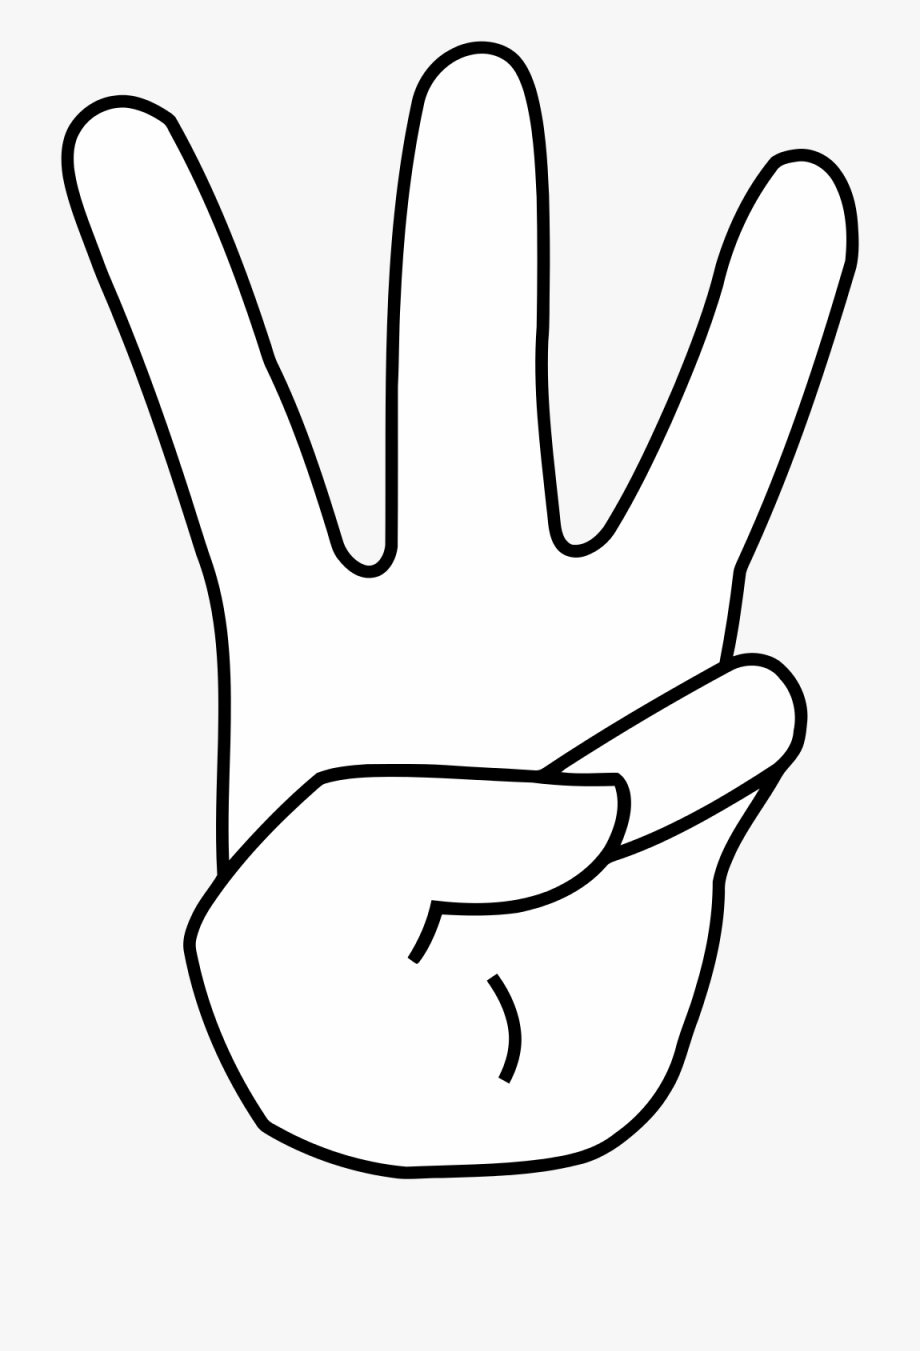 3 Fingers Clipart.